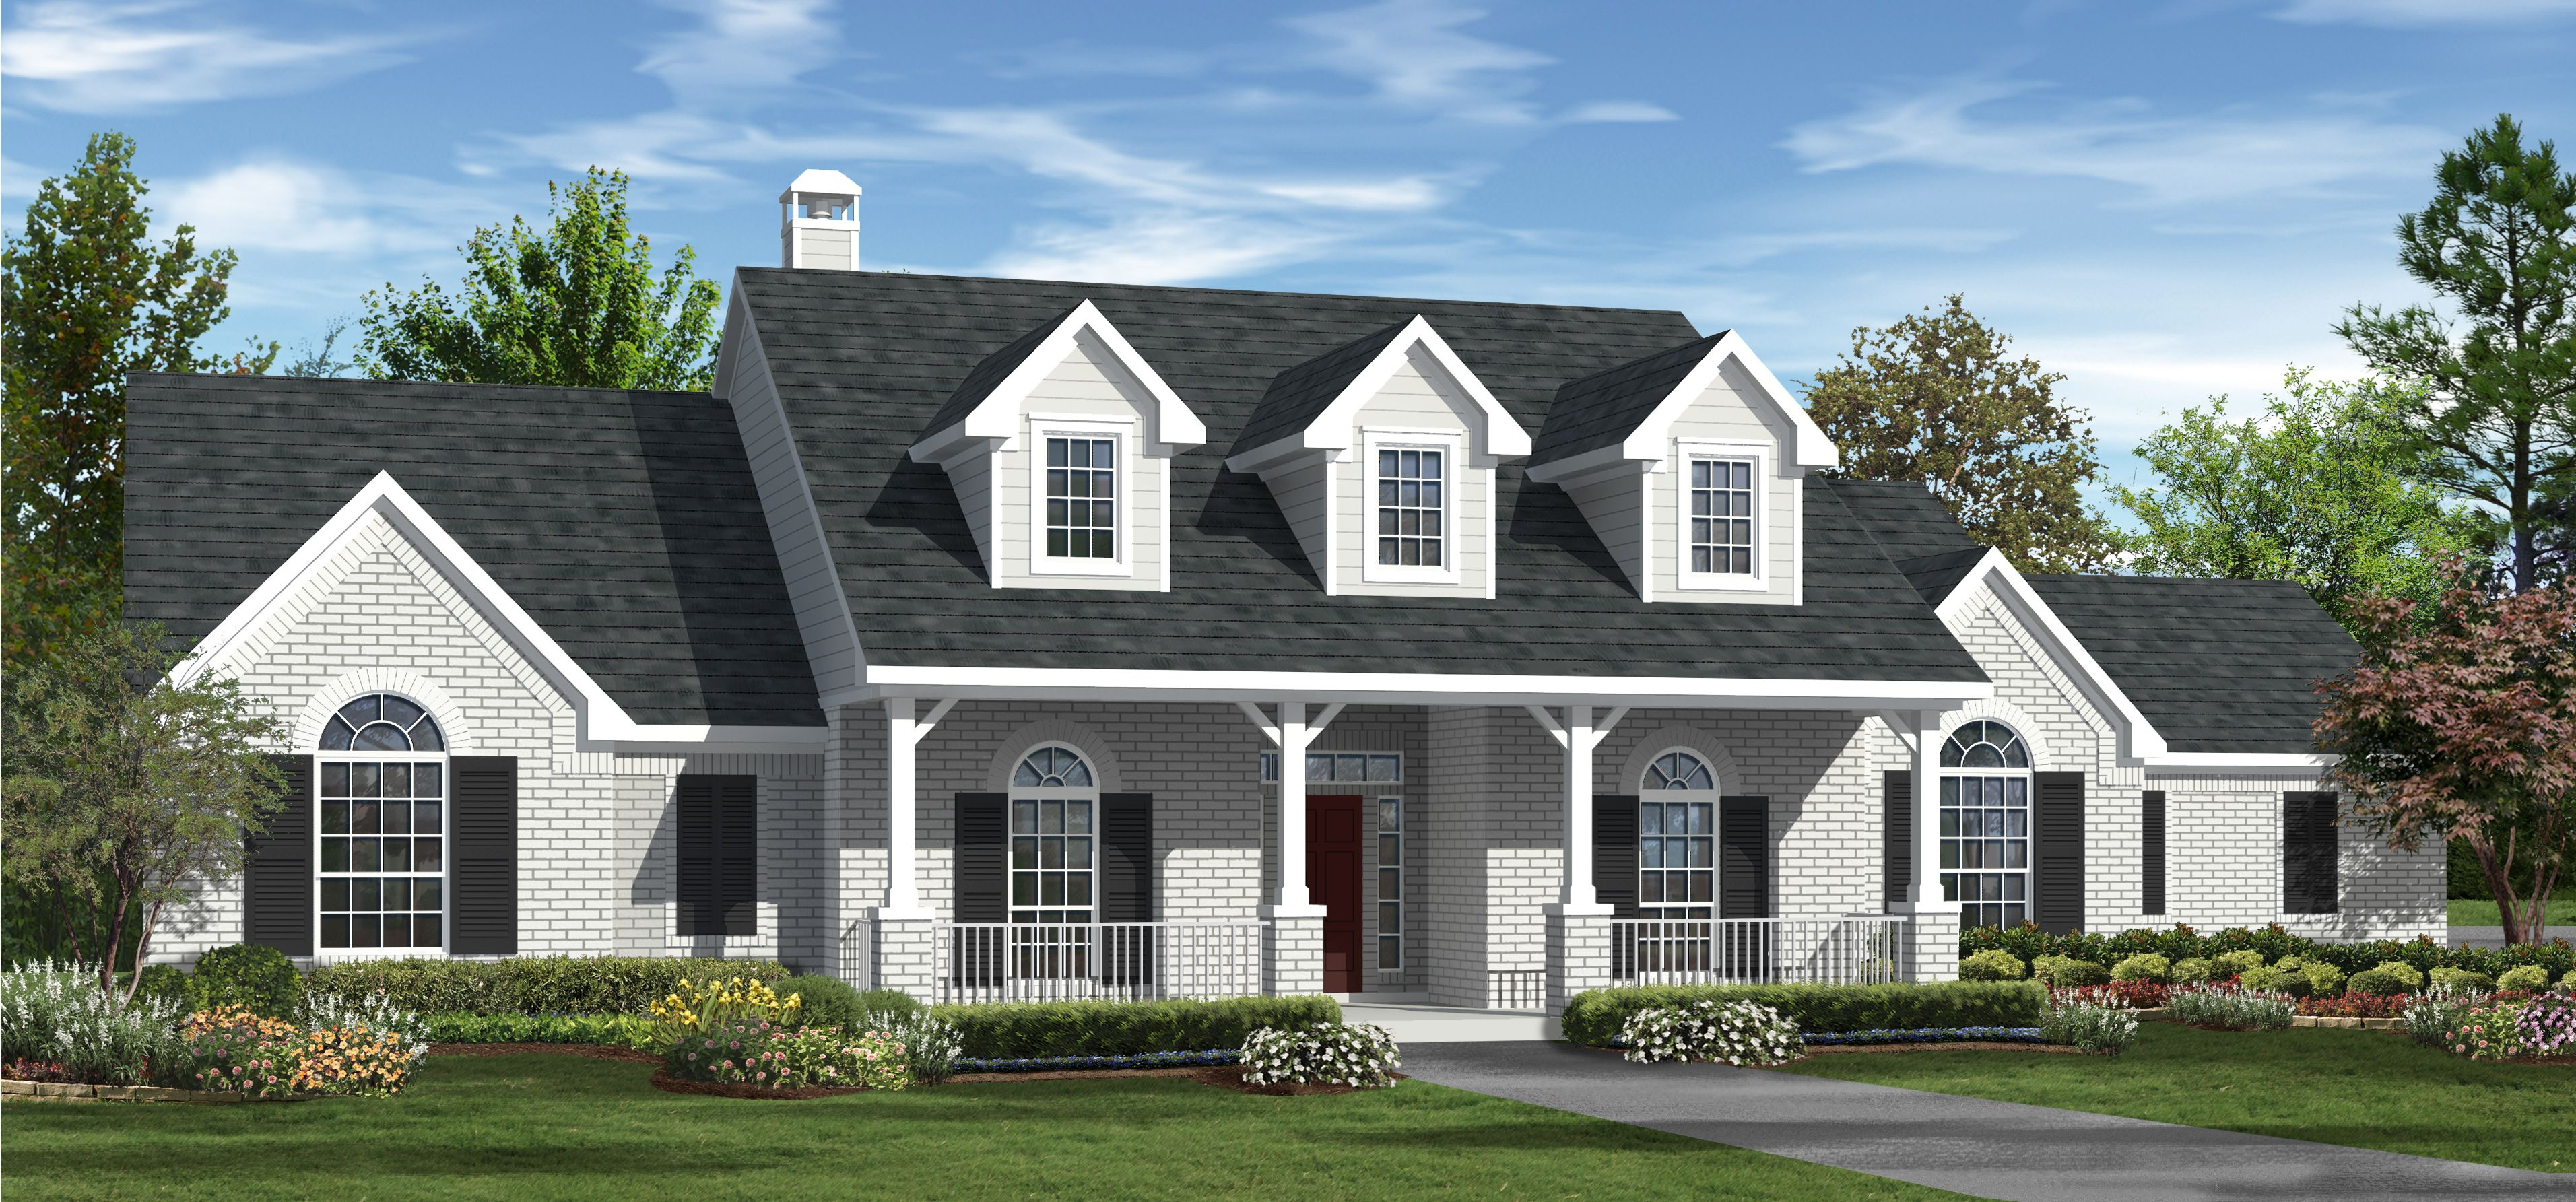 2 504 sq ft house plan 4 bed 3 bath 1 story the for Carrington homes